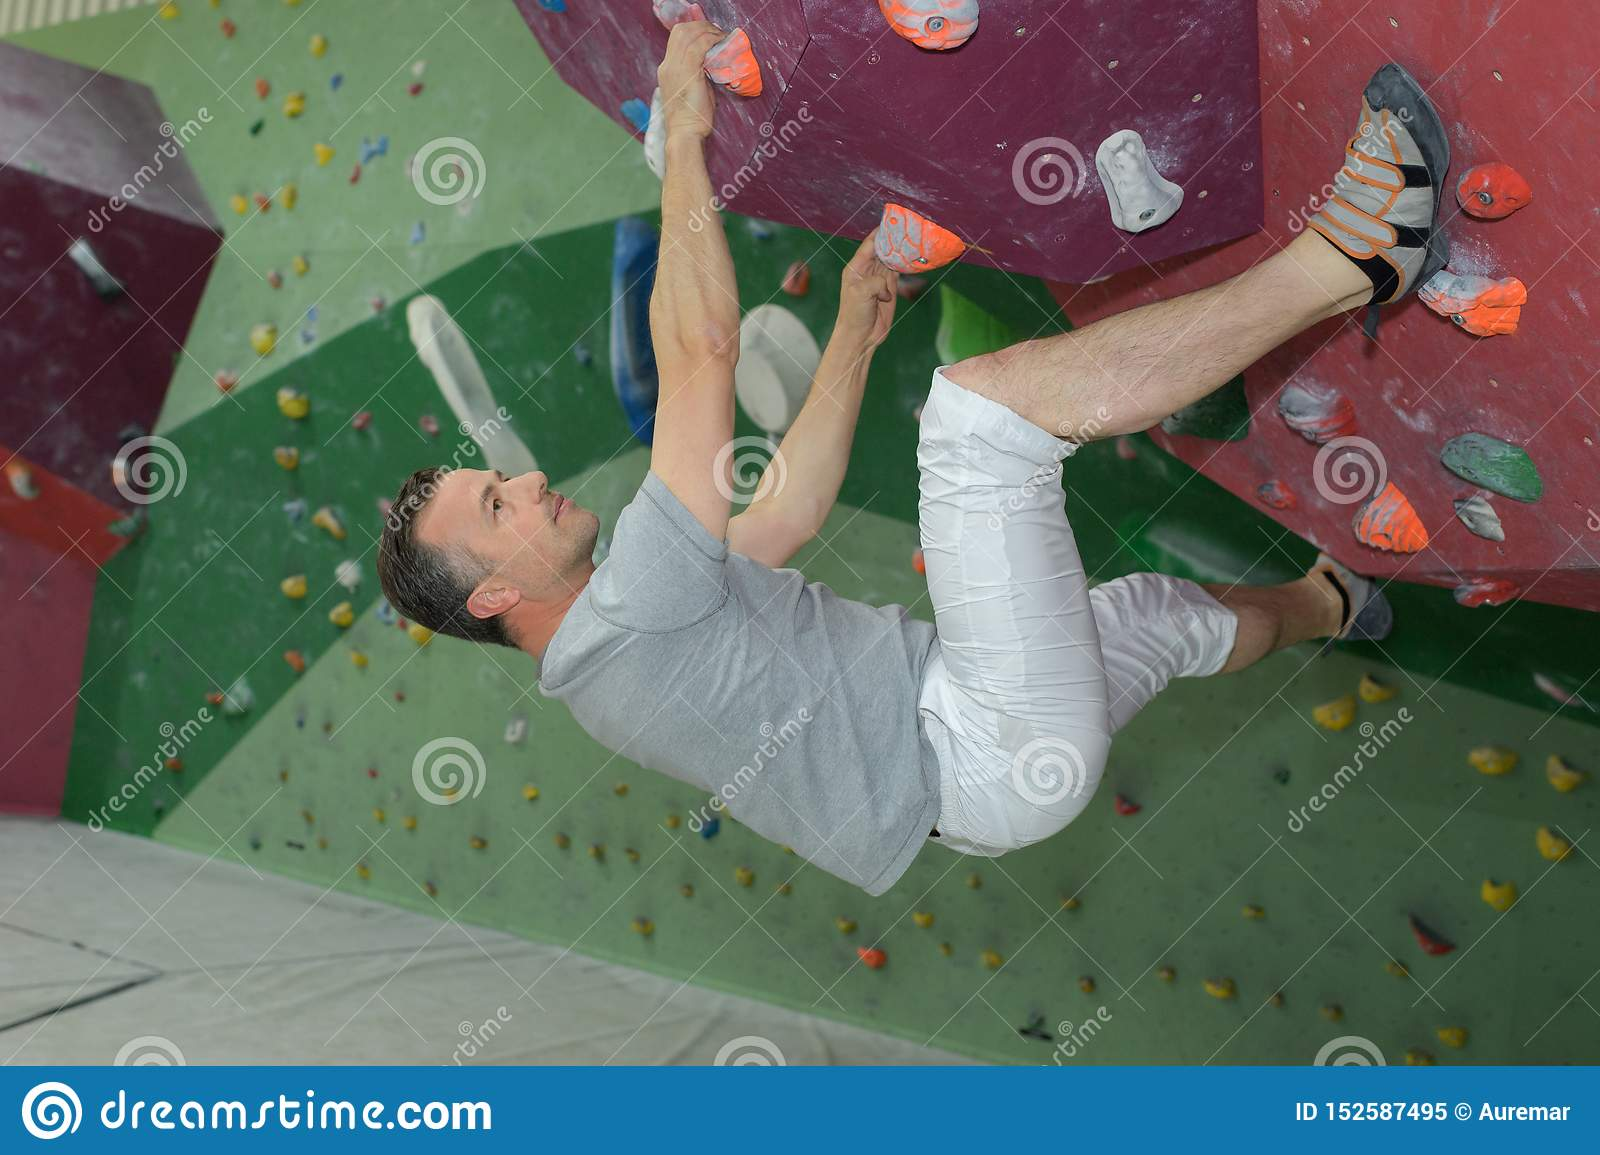 Middle age man on extreme climbing wall